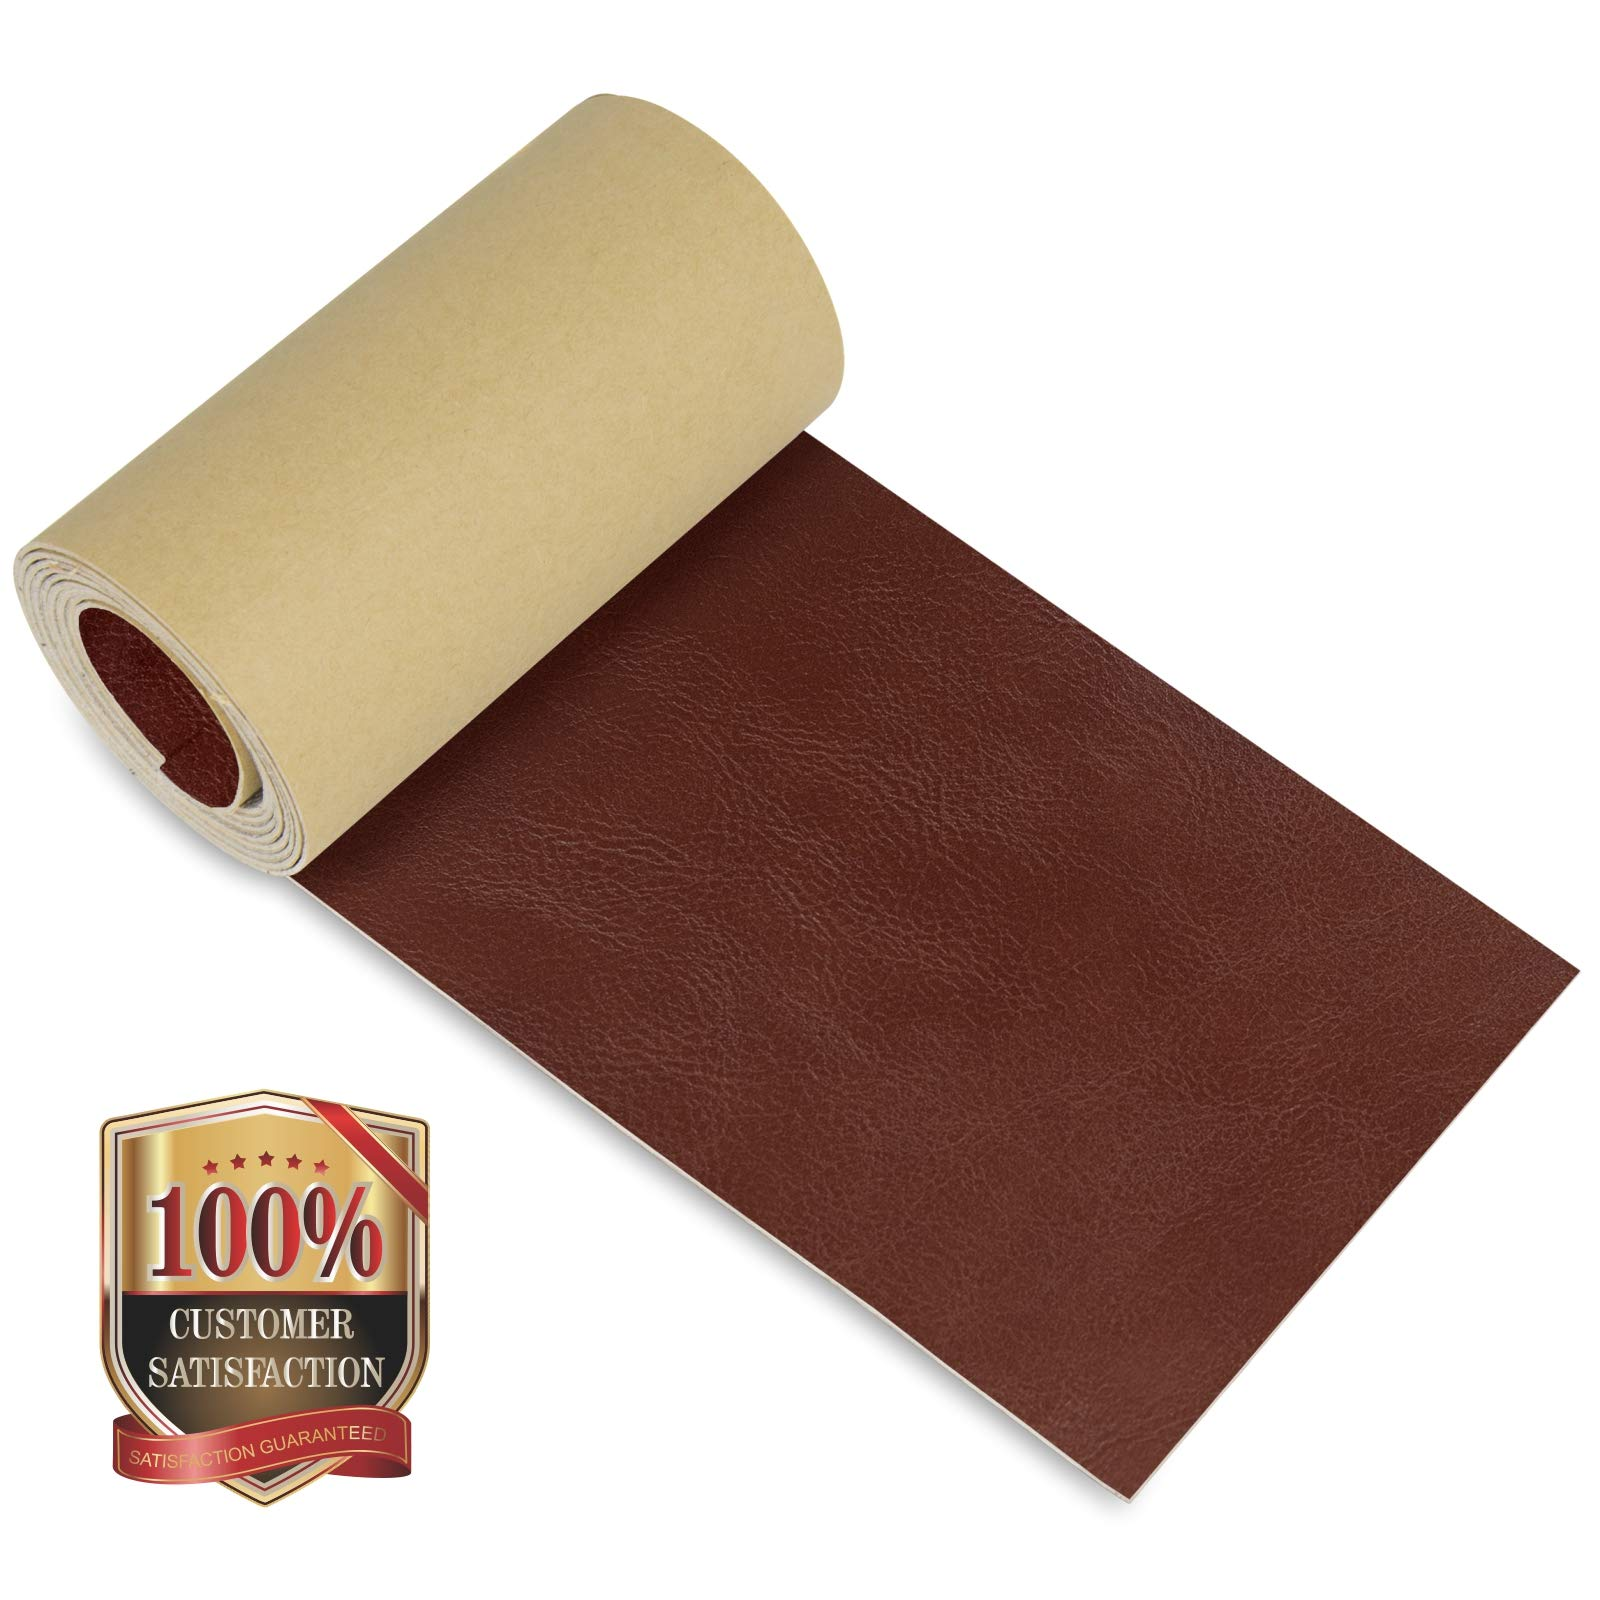 Leather Repair Patch 4 x 50 Inches, 75 Colors Available, Self-Adhesive Leather Tape for Couches, Chairs, Car Seats, Bags, Jackets (Crazy Horse)